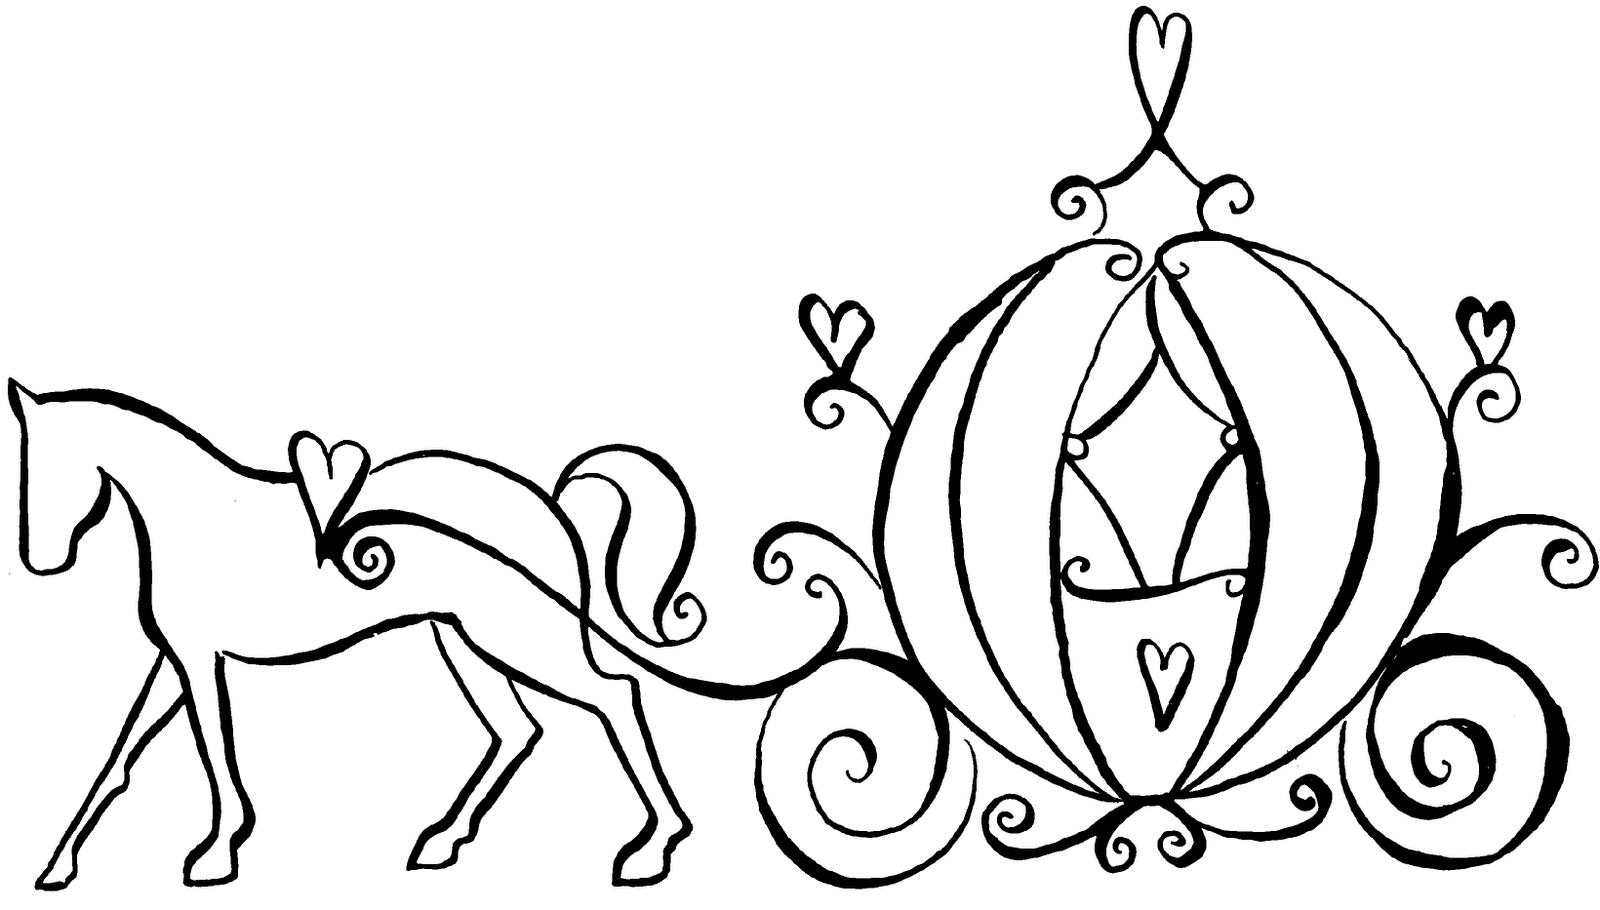 horse and buggy coloring pages transportation past horse and buggy coloring pages and buggy coloring pages horse